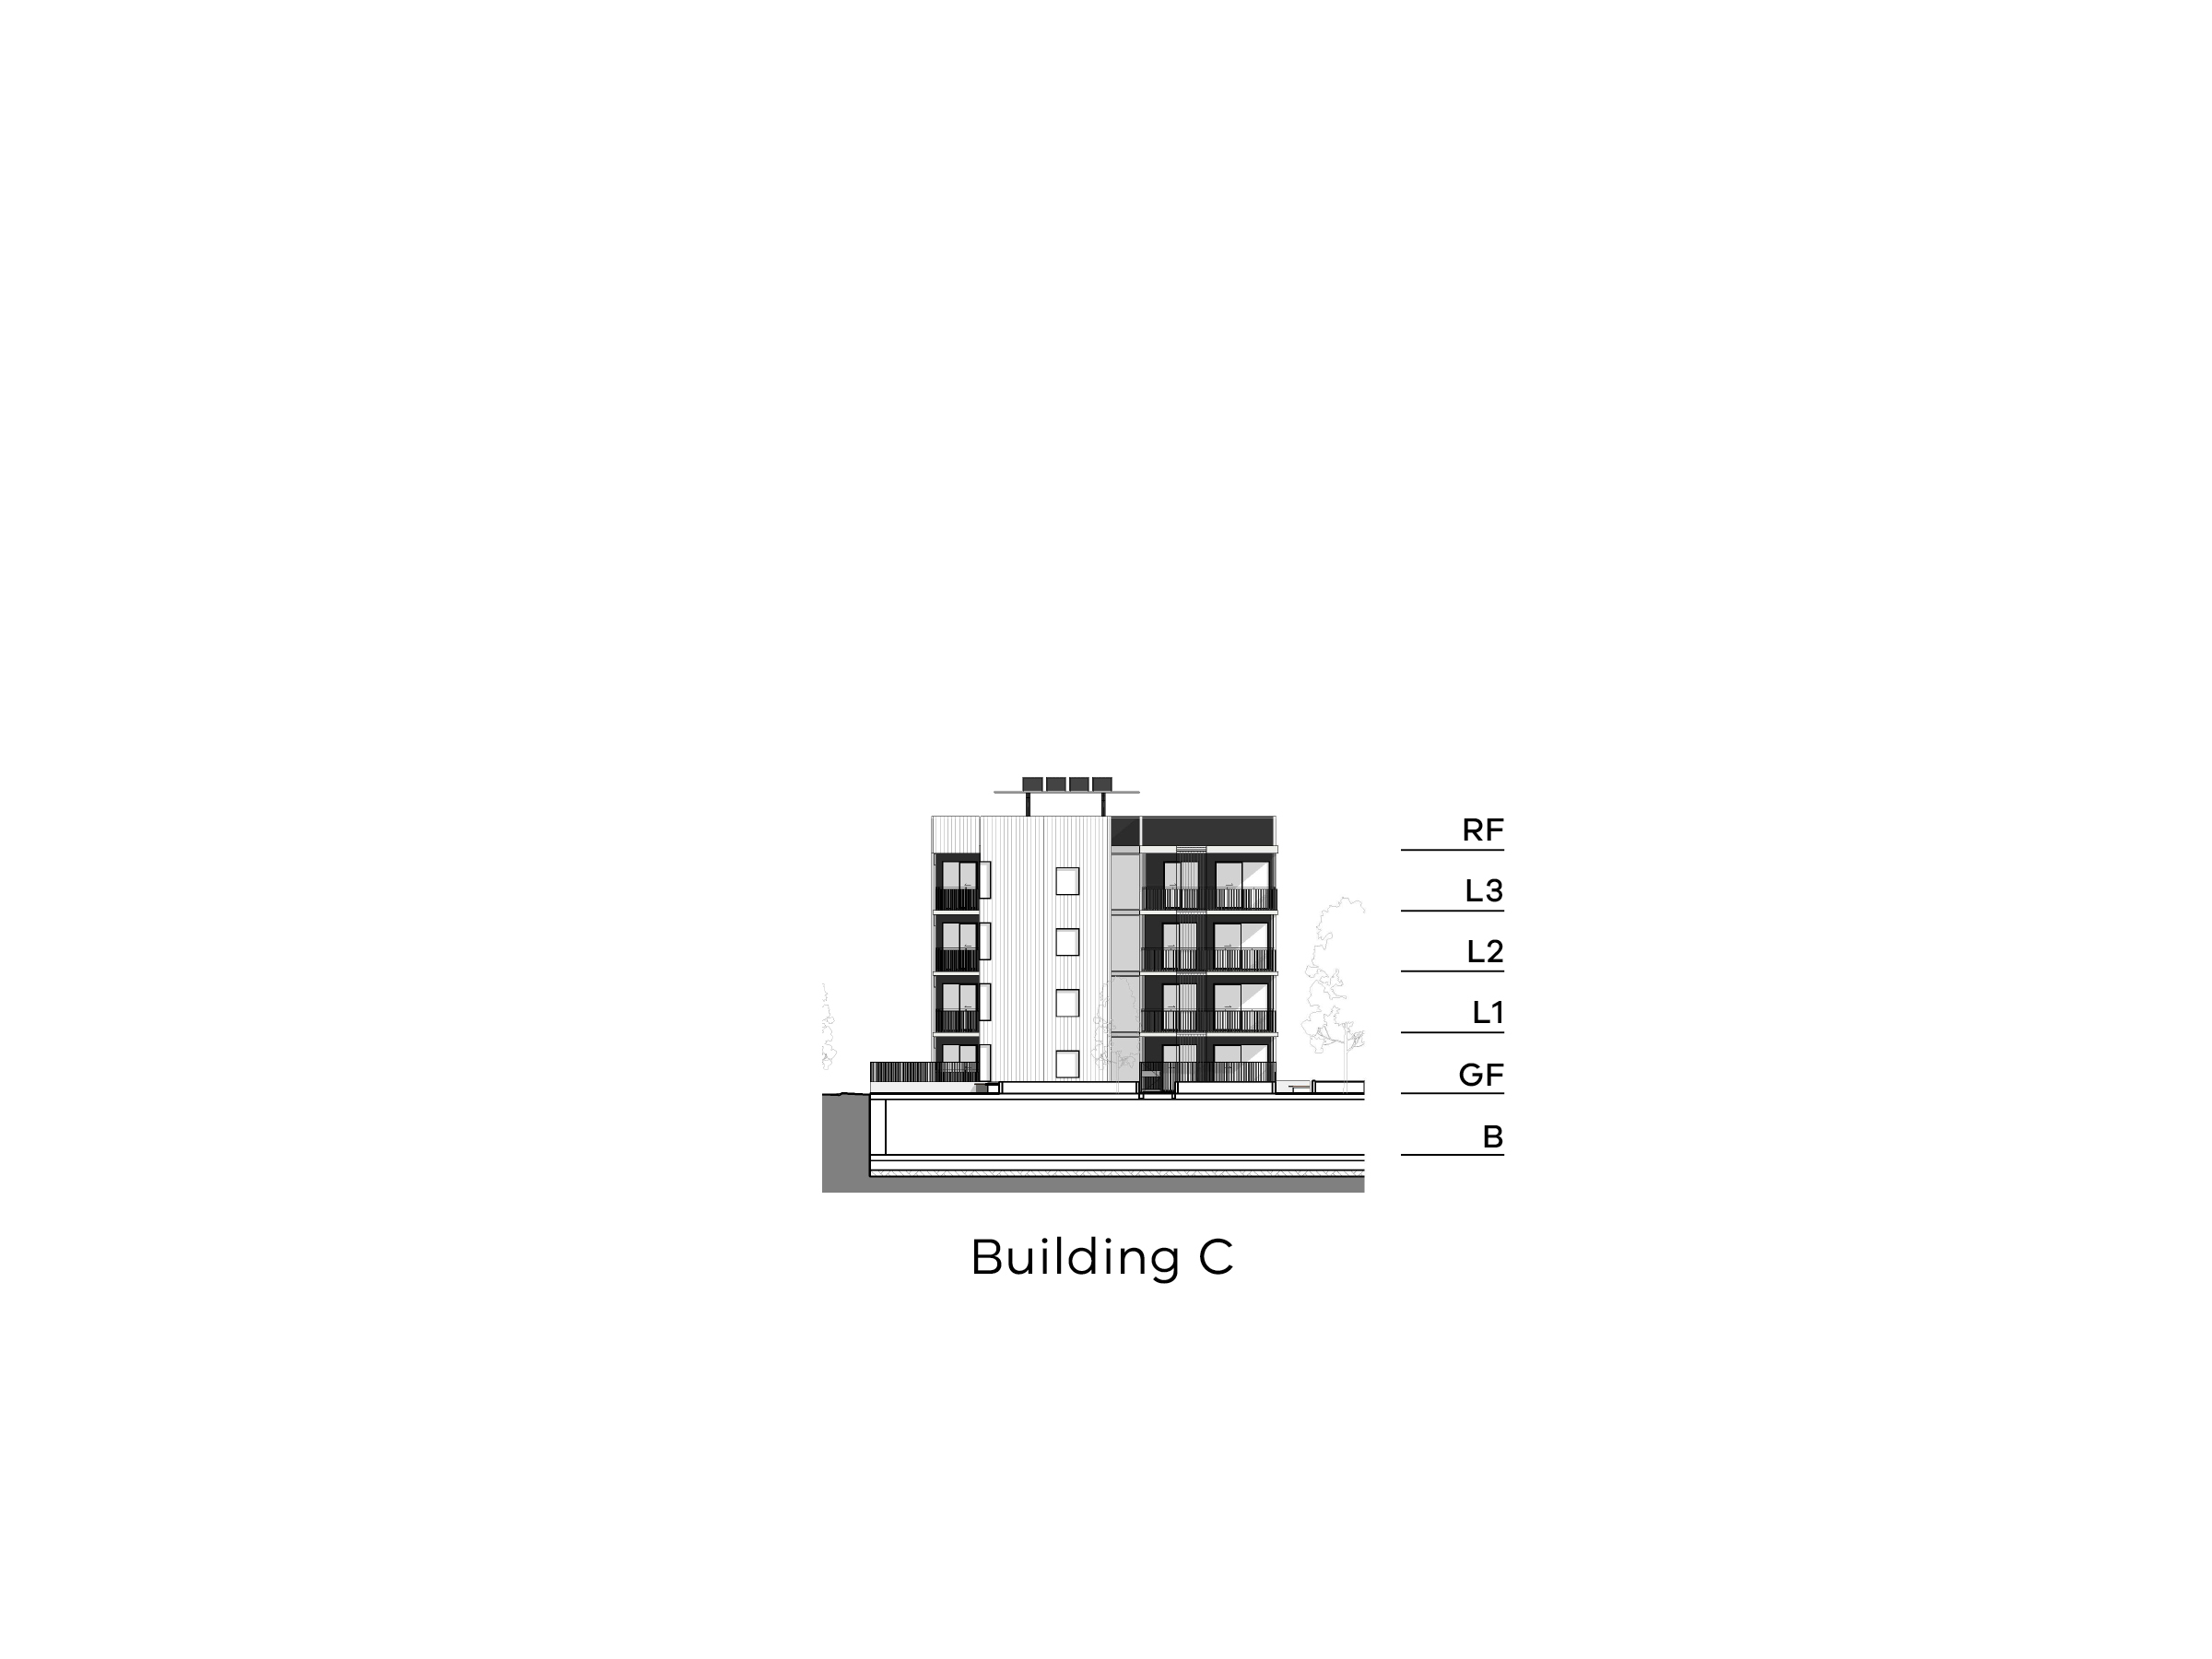 Diagram showing the height of building C as seen from Hopetoun Child Care Centre. Building C has a basement, ground floor, level 1-3 and a flat roof.